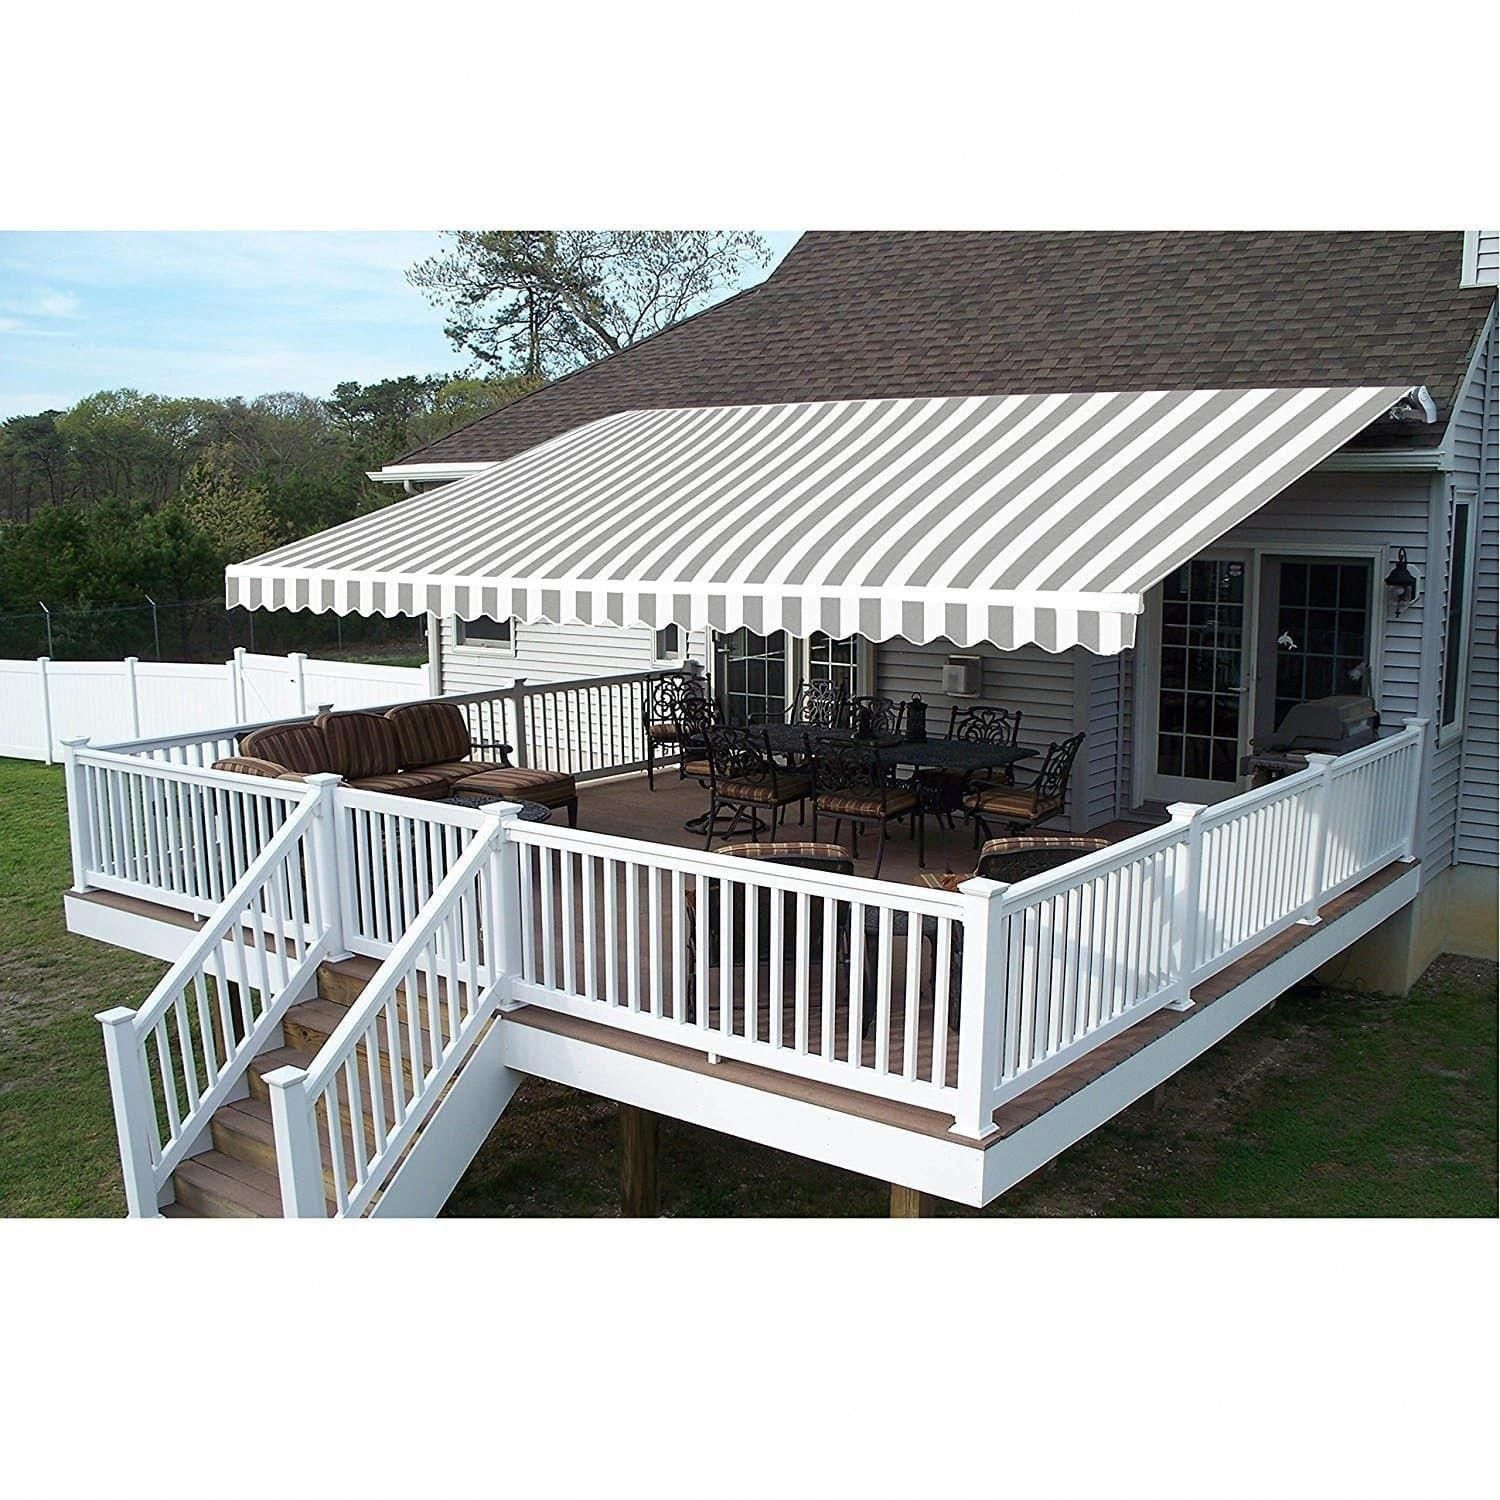 Aleko 12x10 Feet Retractable Outdoor Patio Awning Deck Sunshade Aw12x10greywht Ao Buildadeck Patio Design Patio Canopy Patio Awning